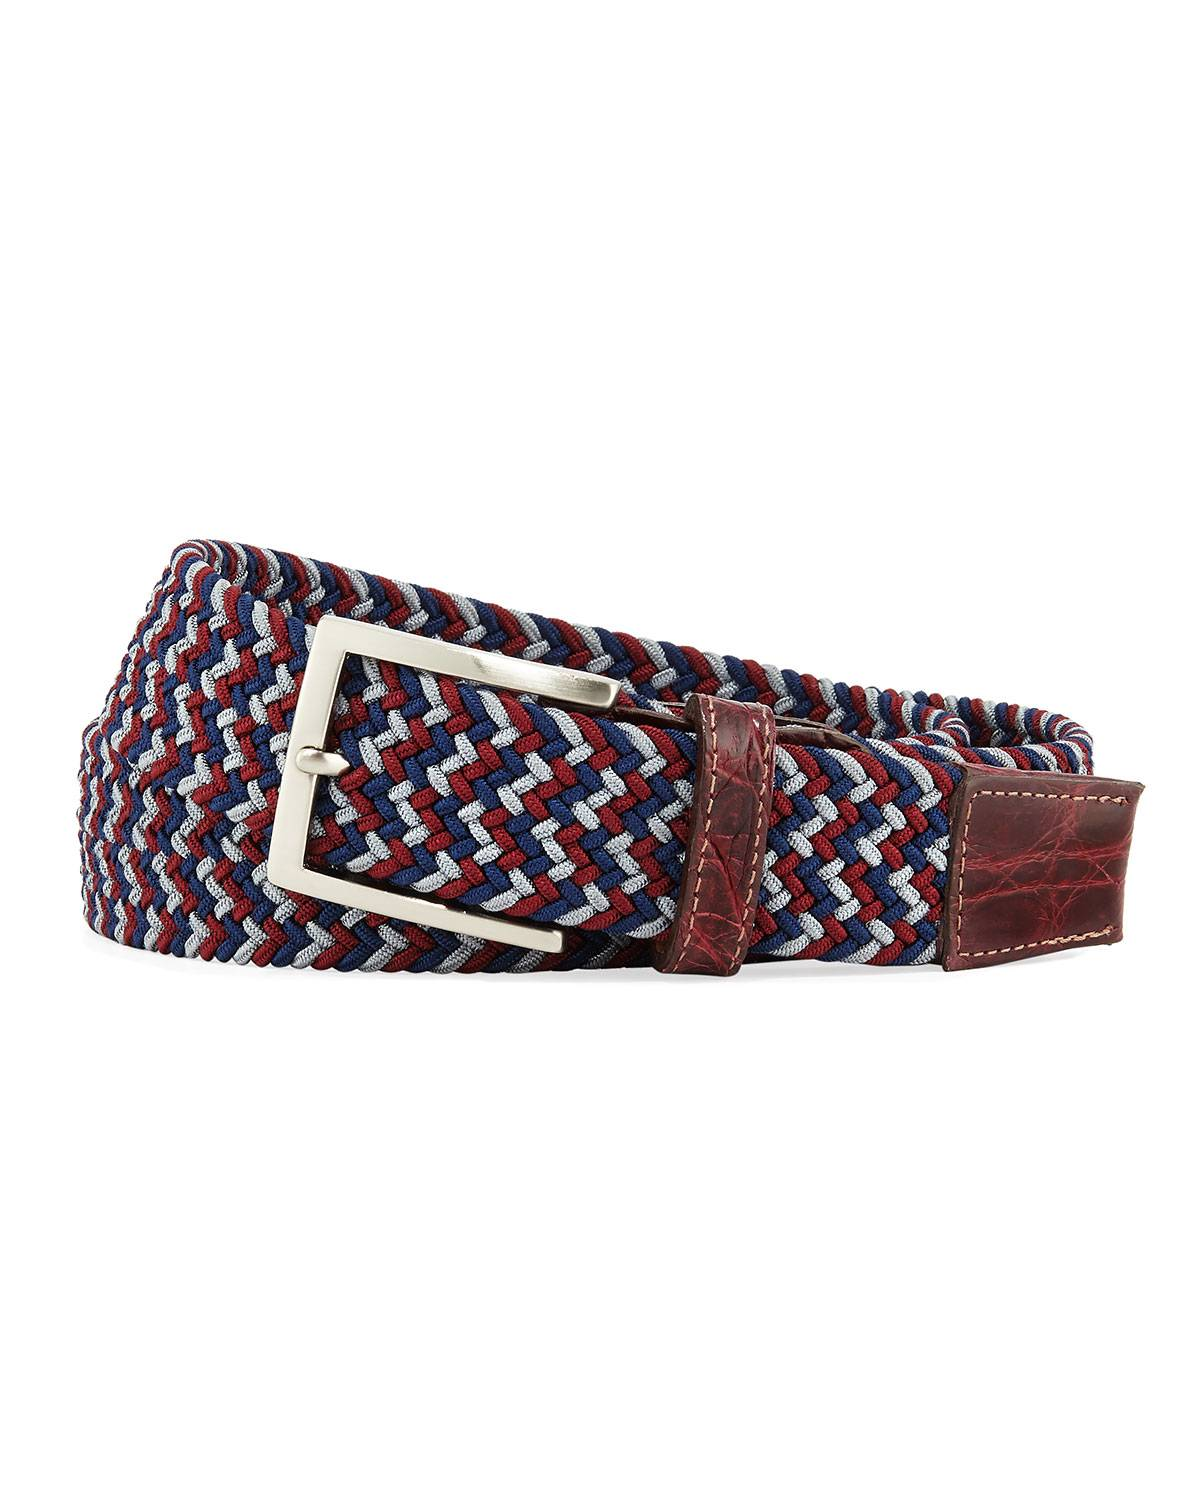 W. Kleinberg Men's Sport Stretch Belt with Crocodile-Trim, Wine - Size: 46in / 115cm